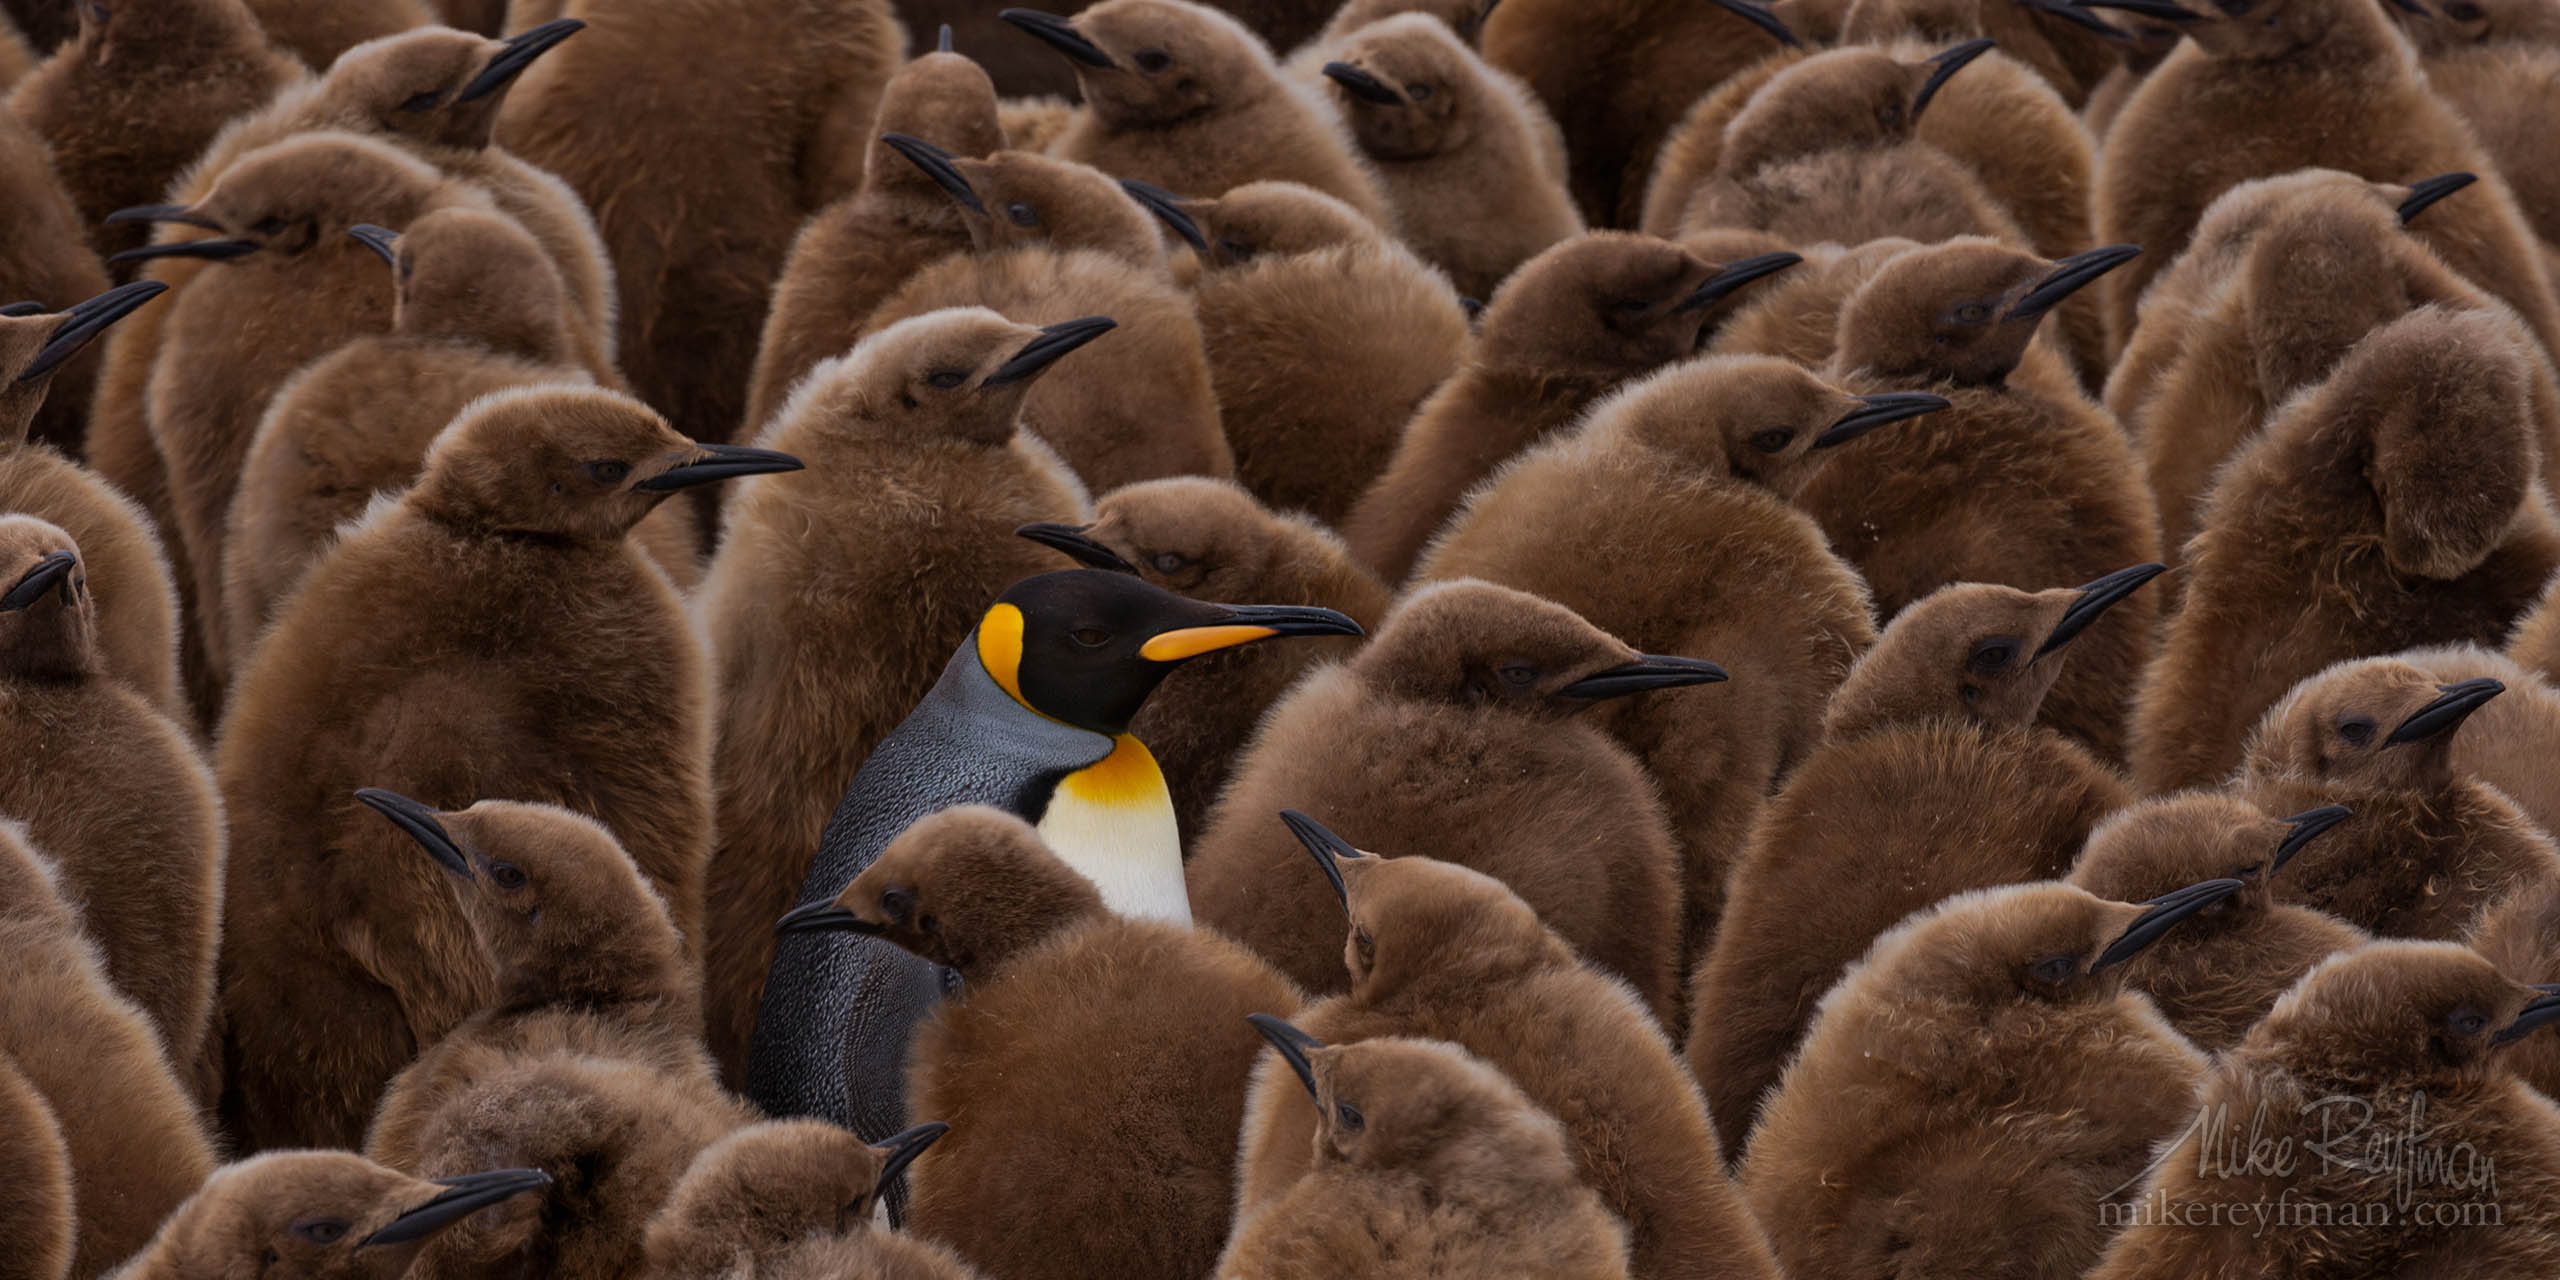 Adult King Penguin (Aptenodytes patagonicus) walking among youngsters and looking for its chick to feed it. King Penguin Creche. Salisbury Plain, South Georgia, Sub-Antarctic P1:2-MRD4C3356 - Selected panoramic images with 2:1 aspect ratio - Mike Reyfman Photography